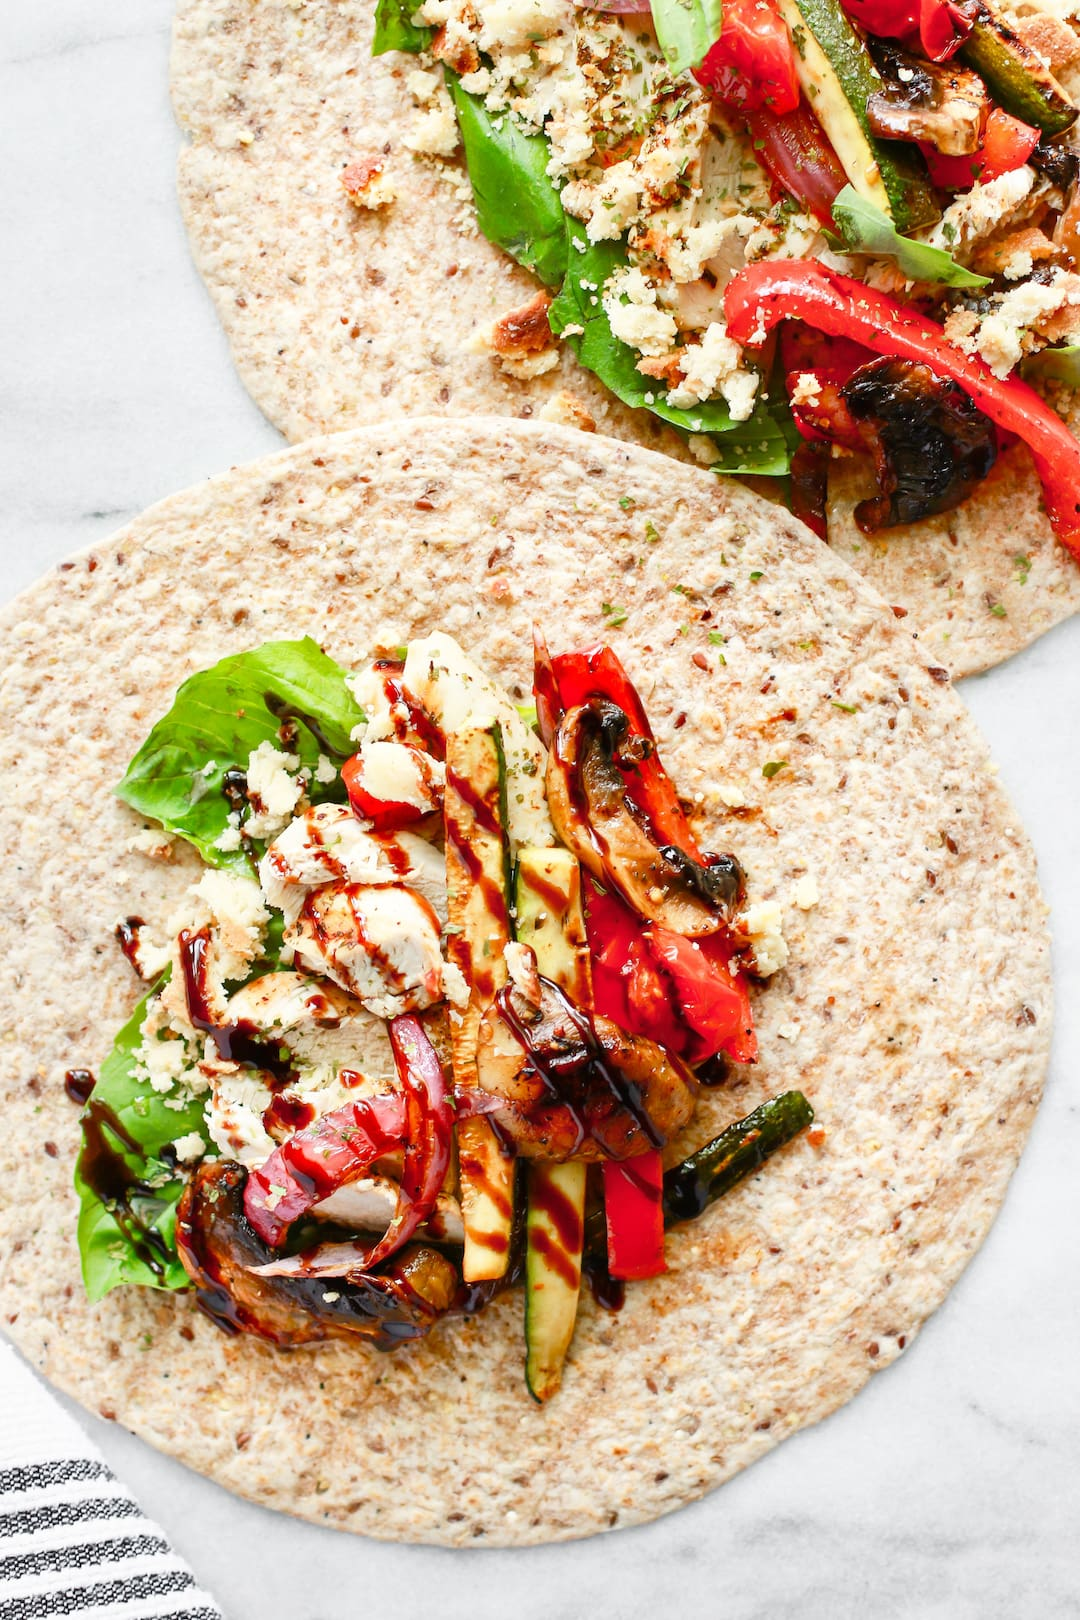 tortilla wraps with grilled vegetables, chicken, and a balsamic drizzle